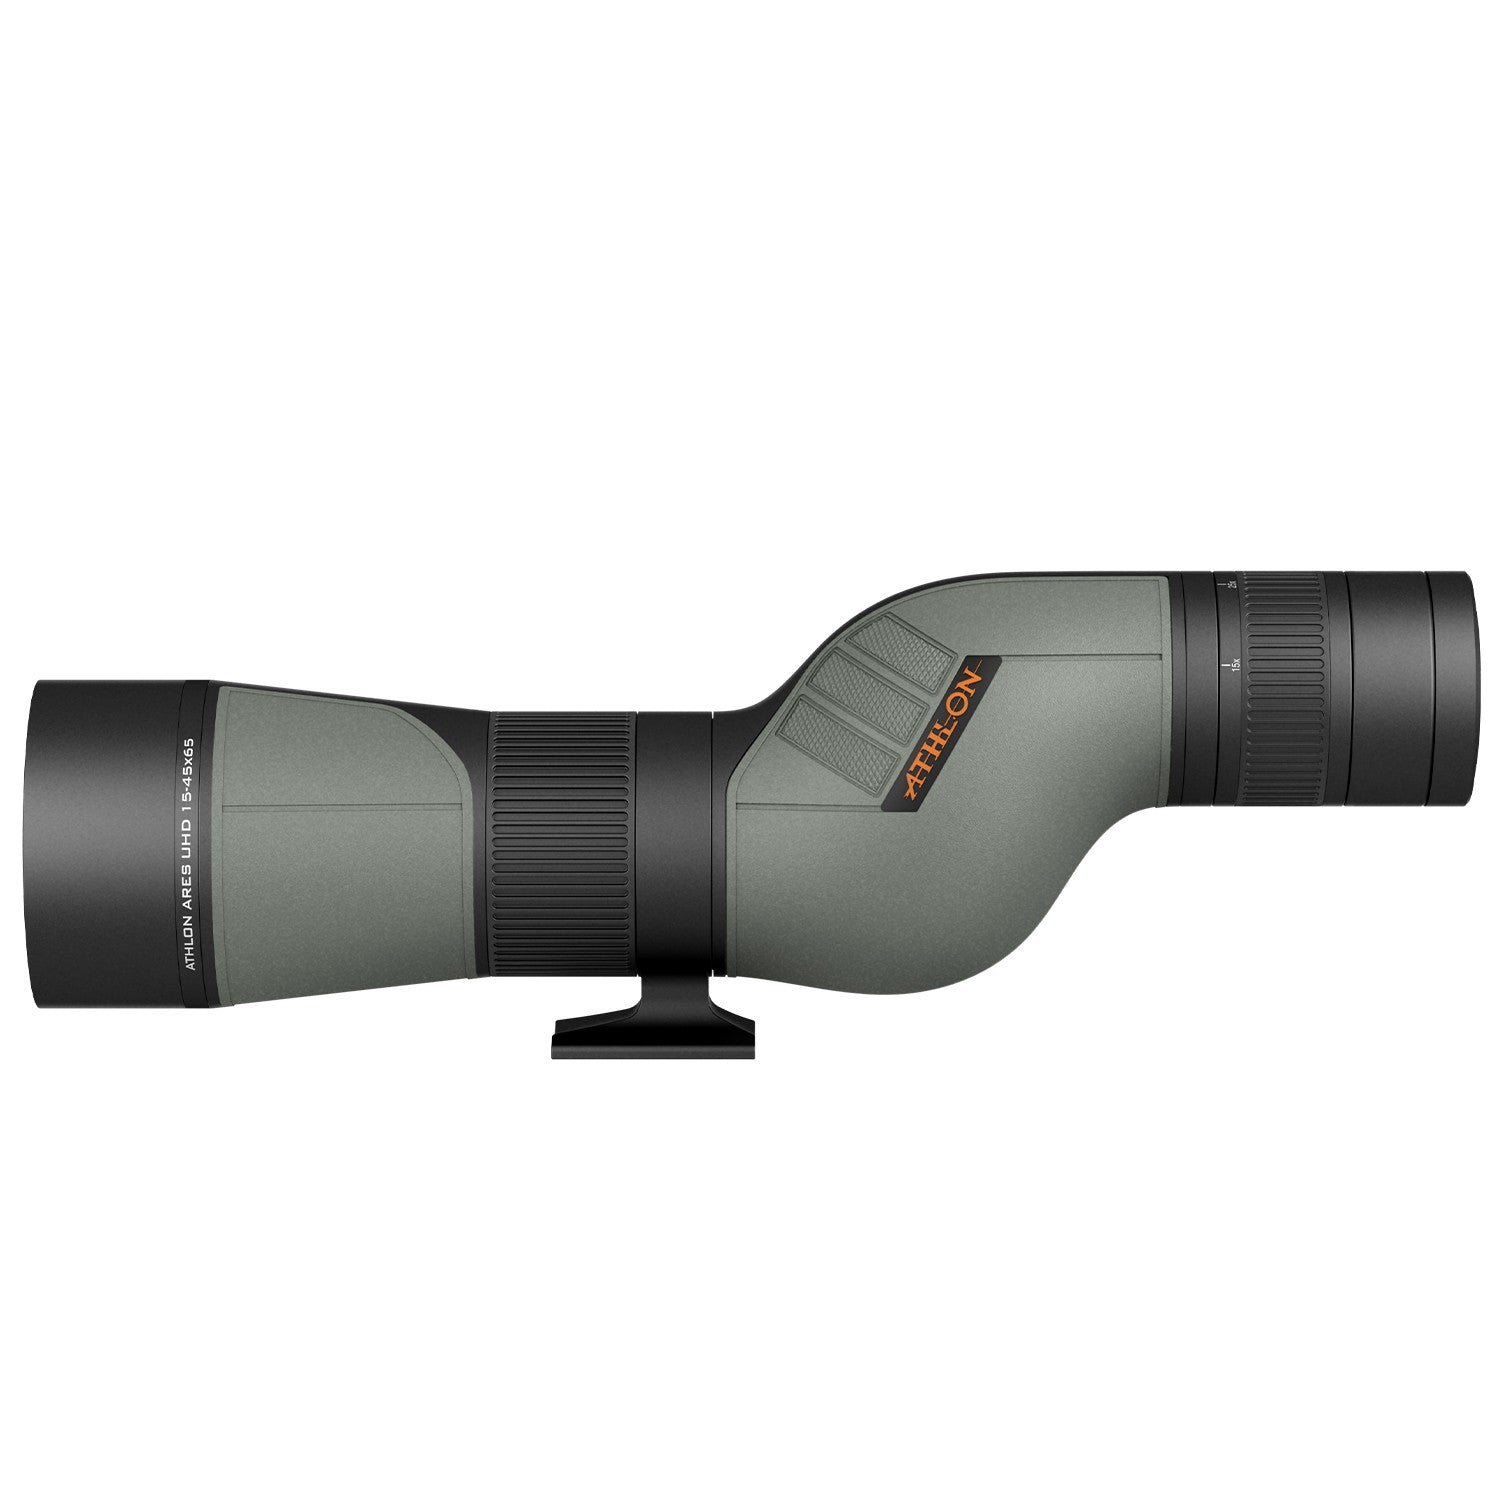 Athlon Optics Ares G2 15-45×65mm Straight Angle UHD Spotting Scope